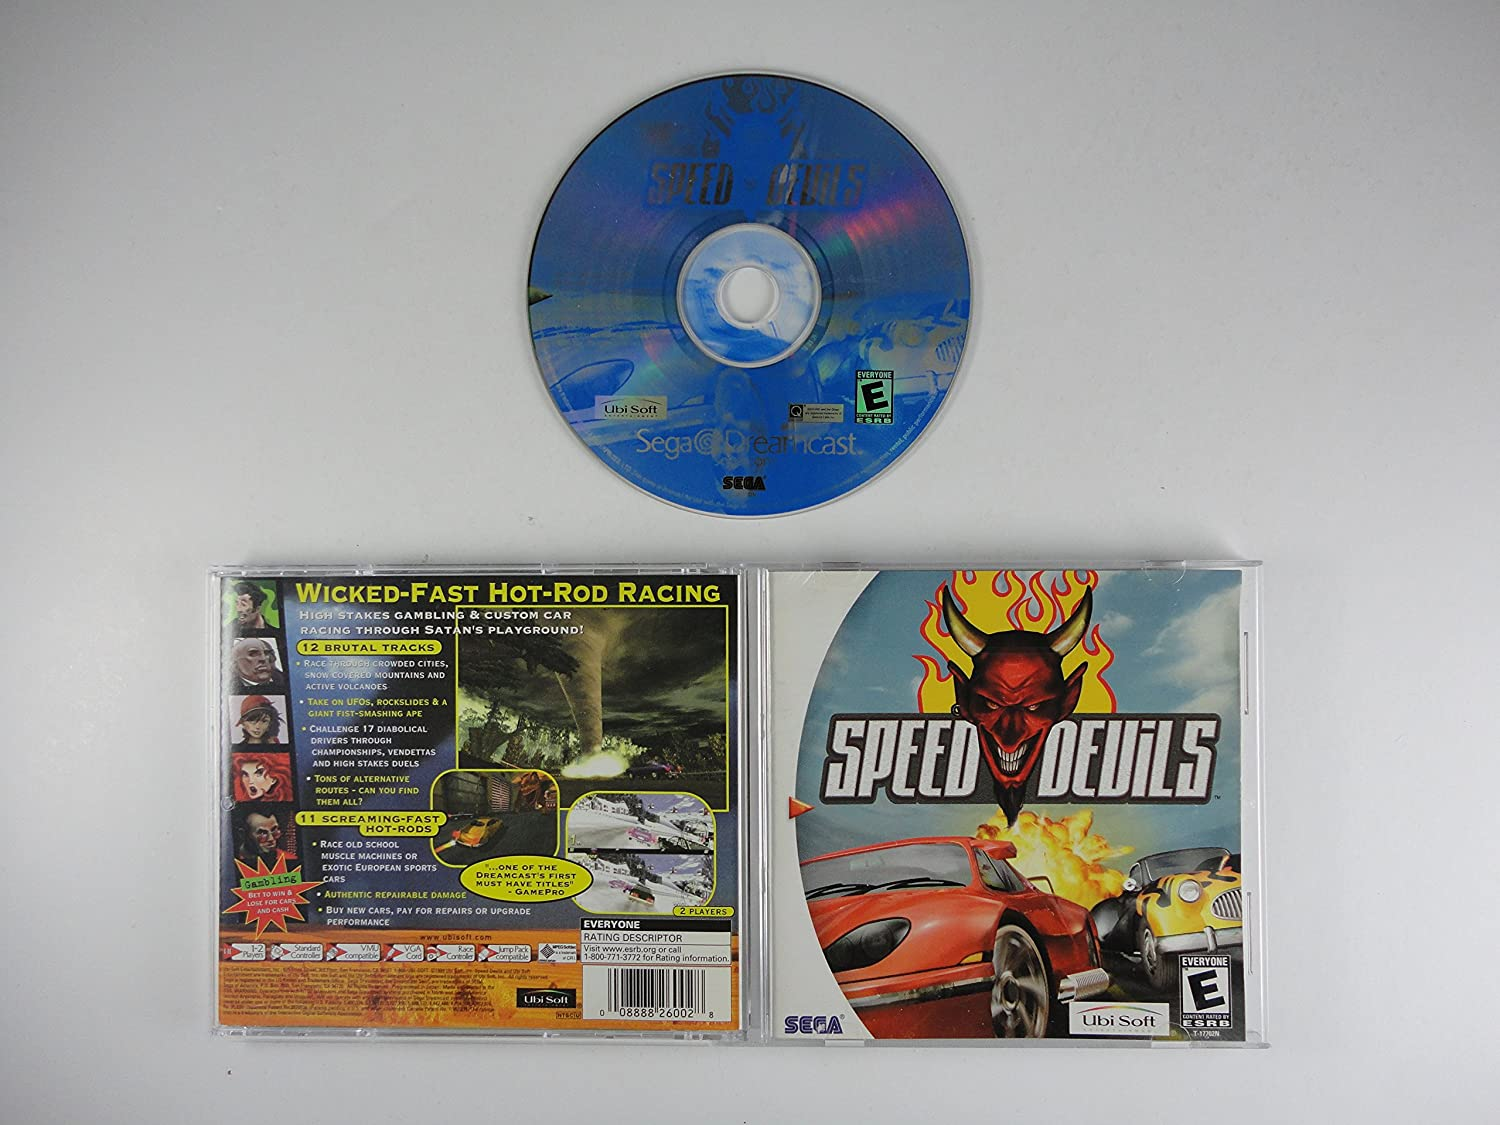 Amazon.com: Speed Devils - Sega Dreamcast: Video Games